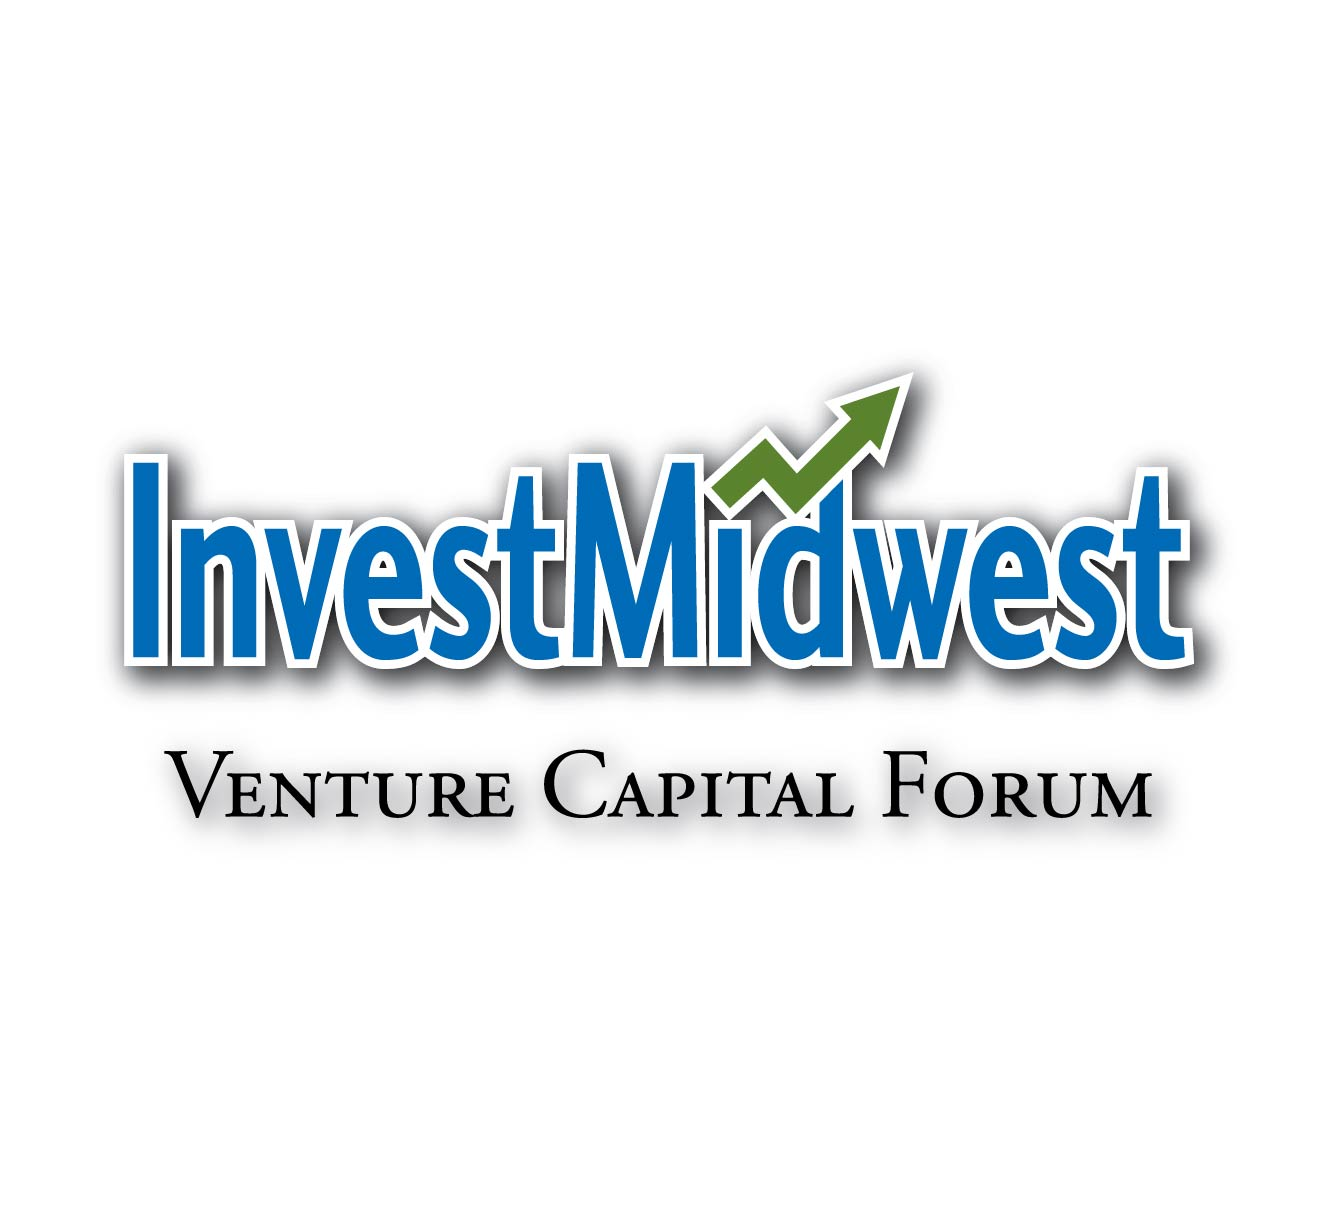 InvestMidwest-01